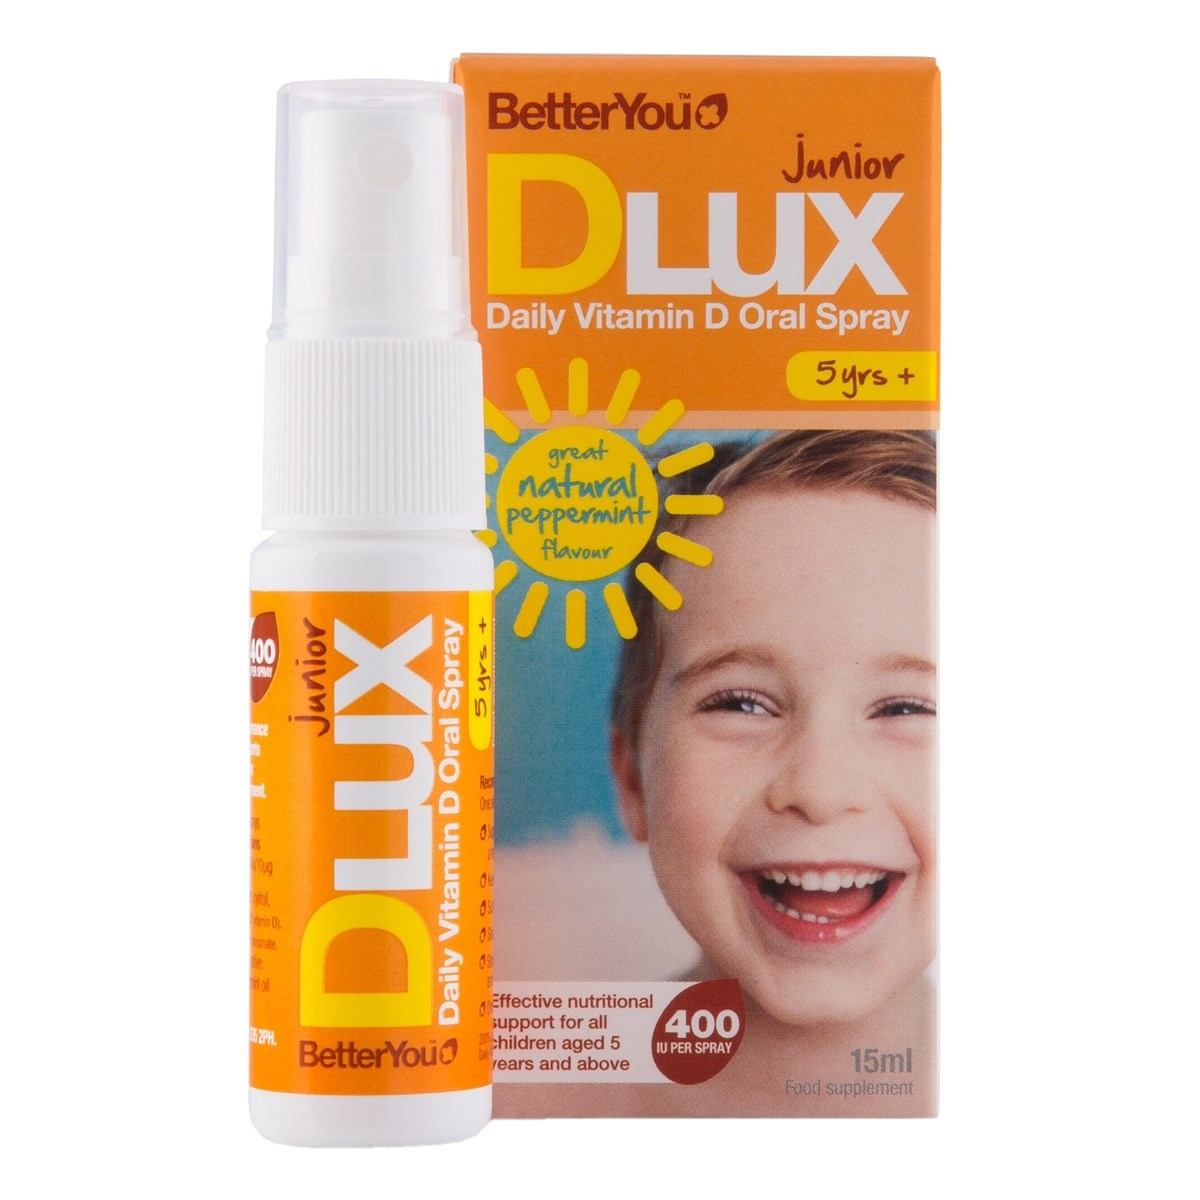 Better You Junior DLux Vitamin D Oral Spray